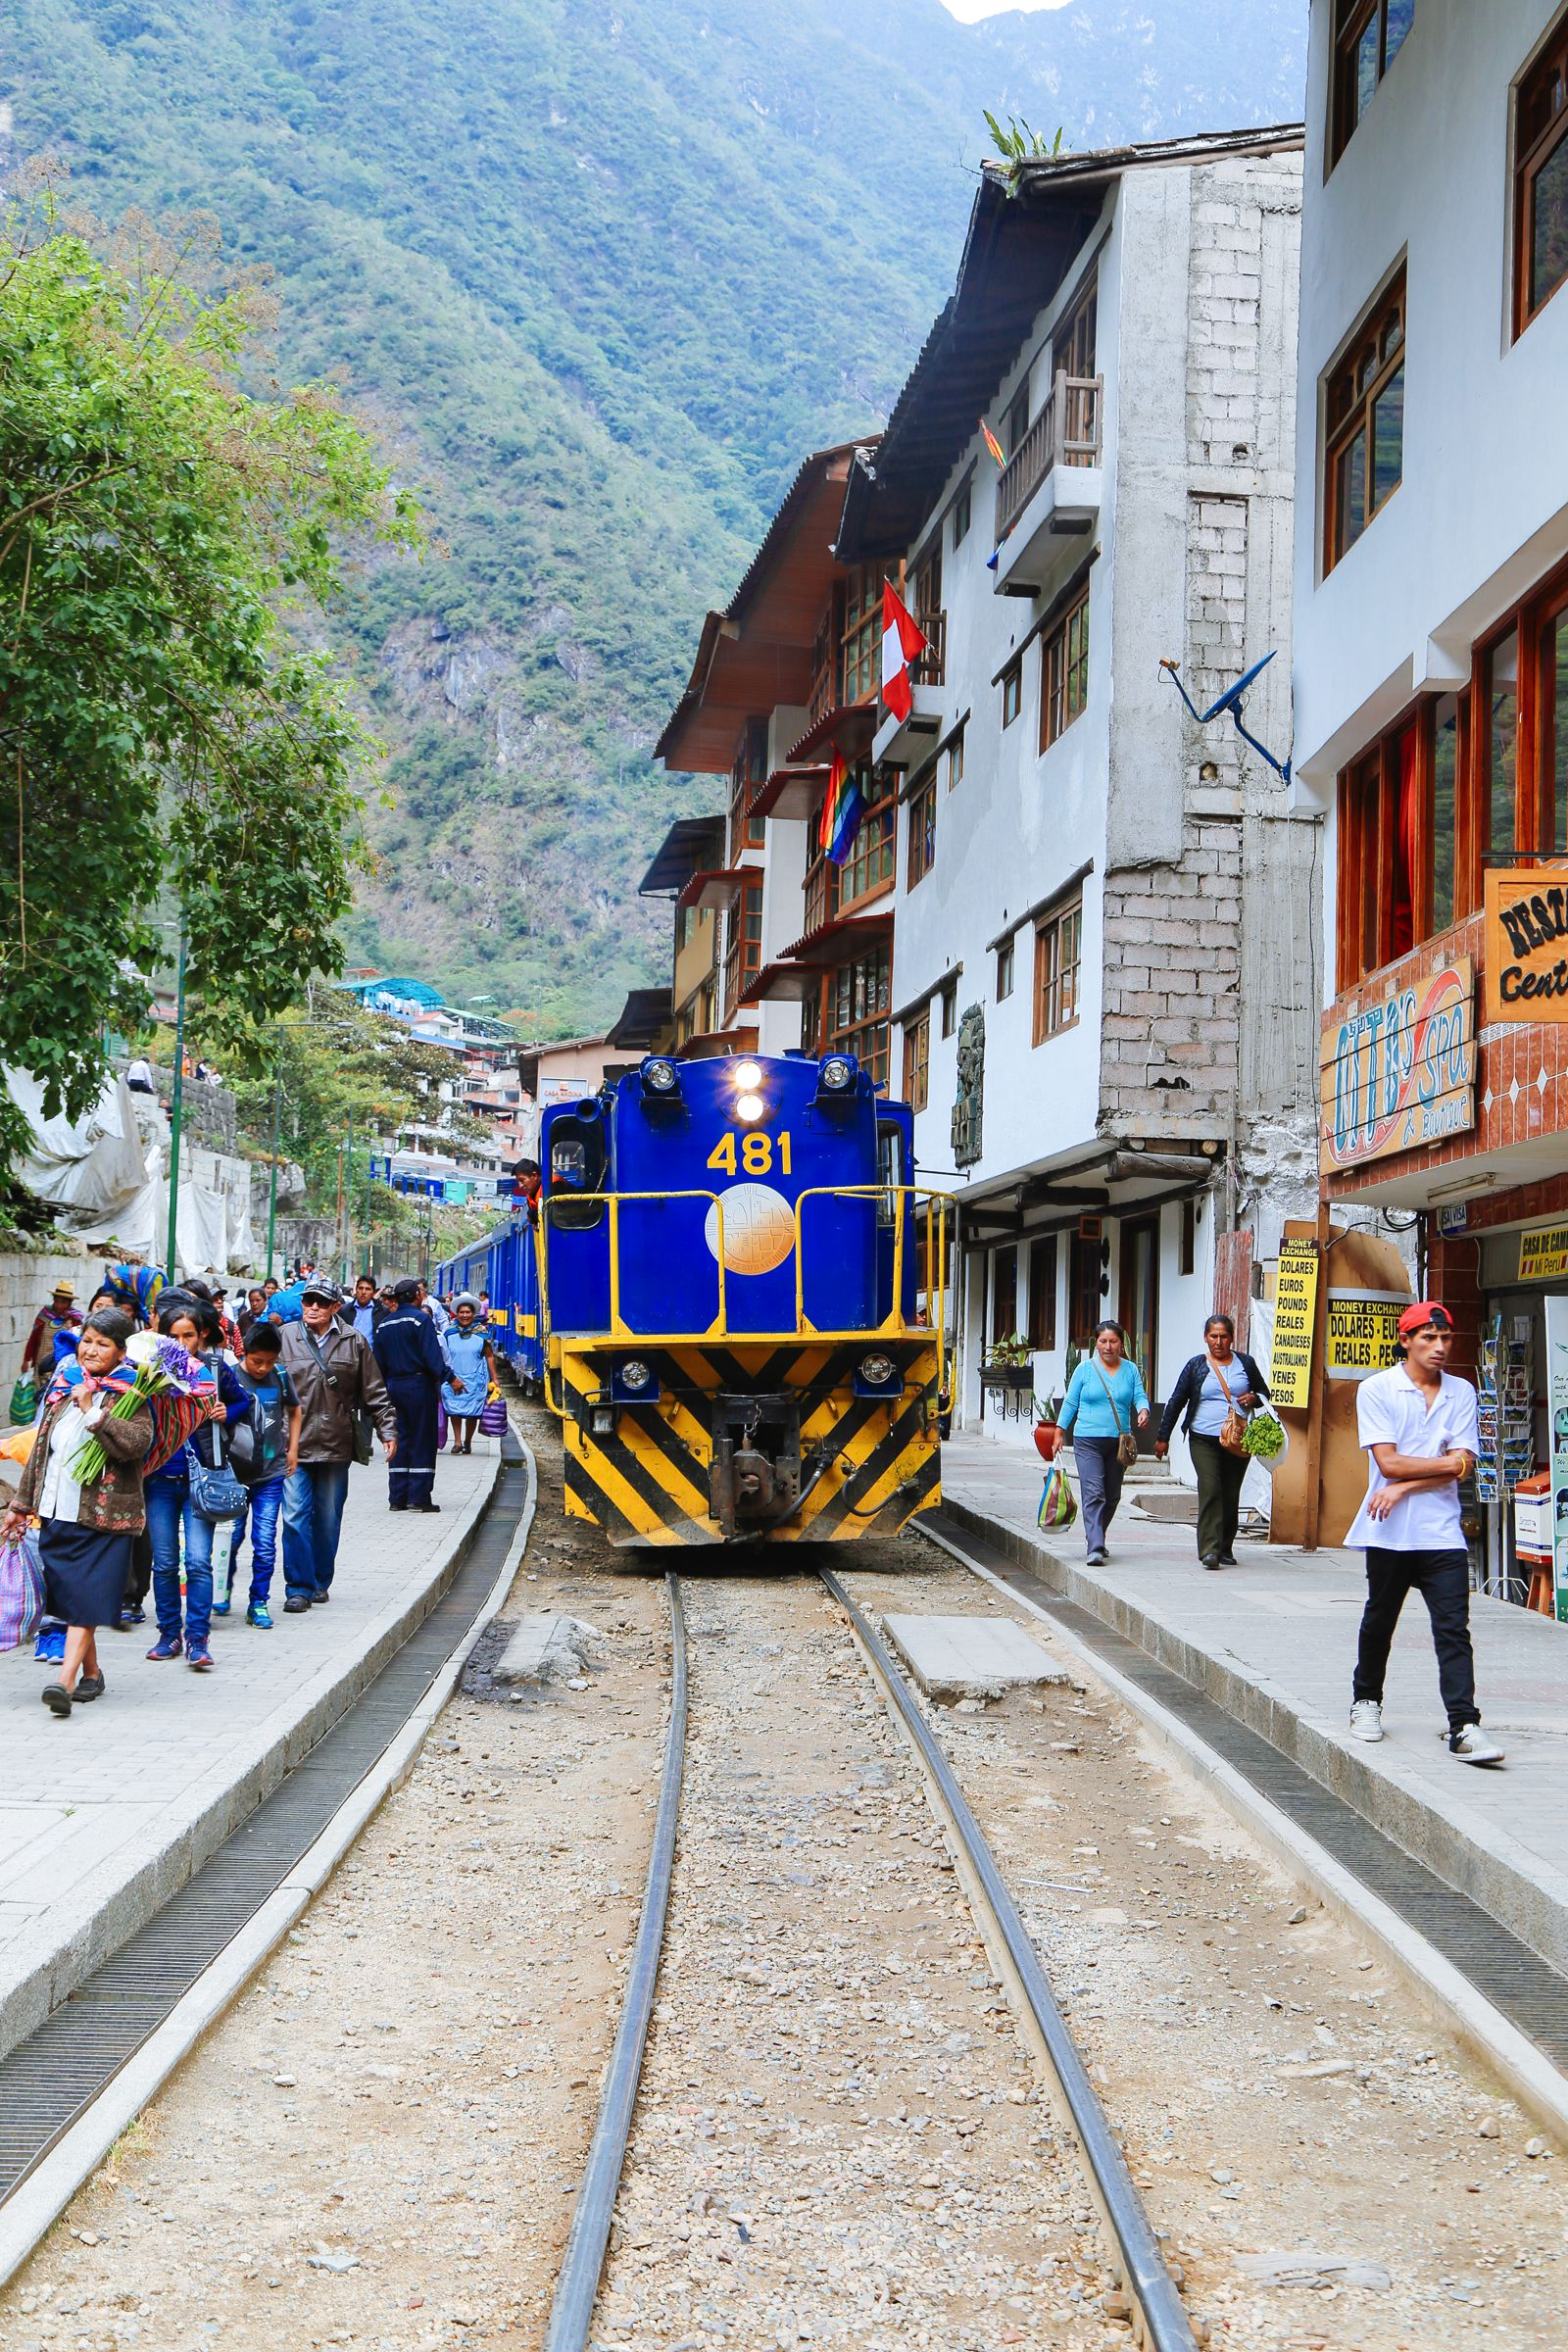 4 Amazing Ancient Inca Sights To See In Cusco And The Sacred Valley of the Incas (2)